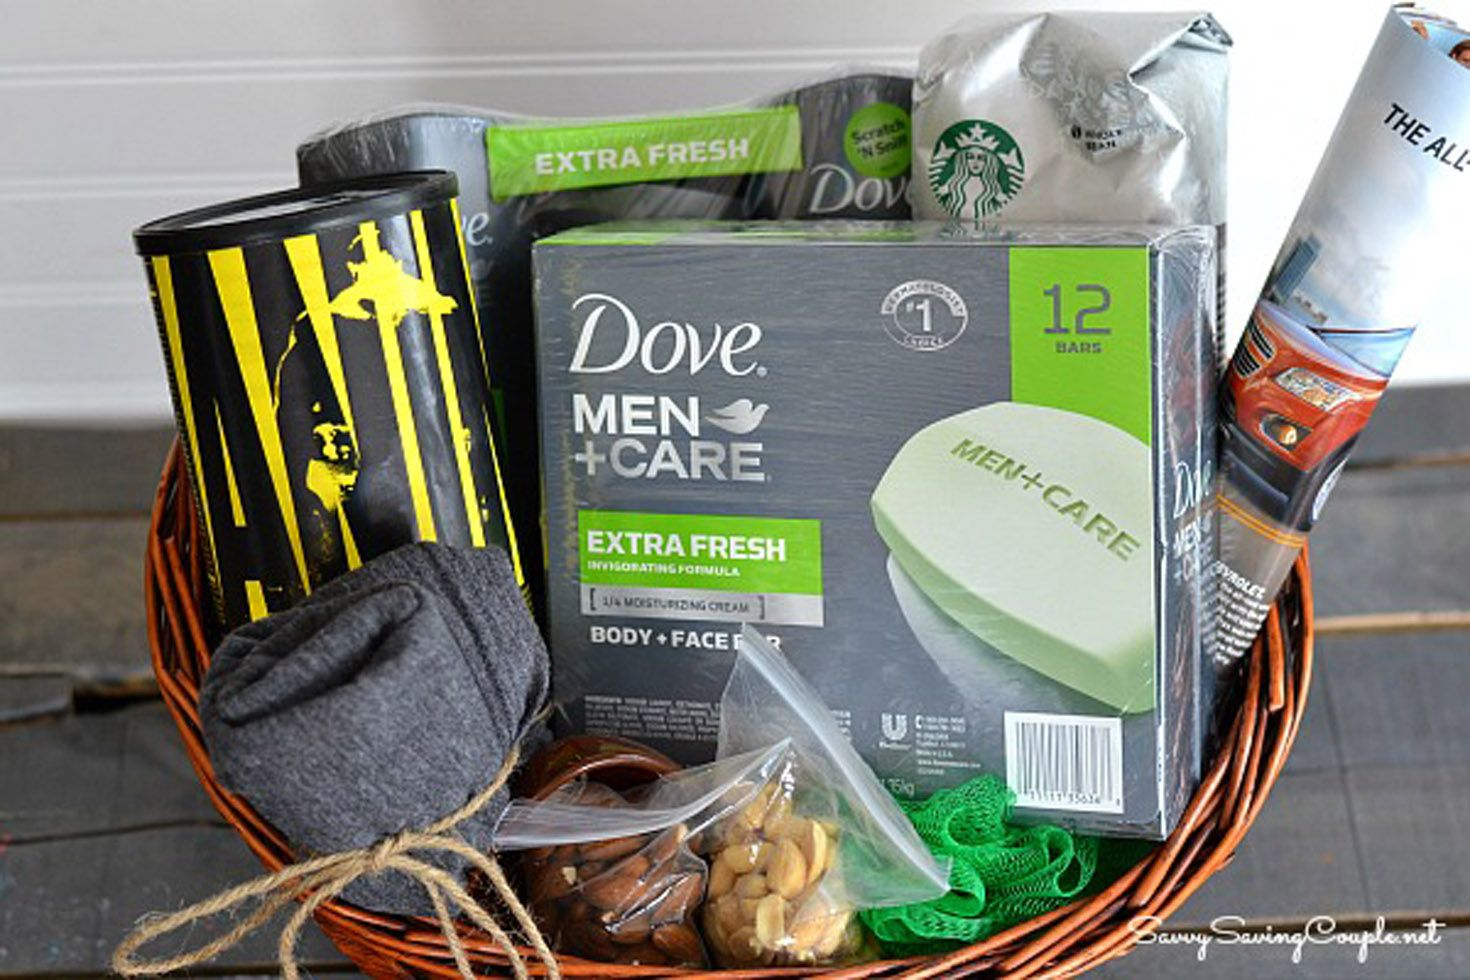 13 diy fathers day gift baskets homemade ideas for gift baskets 13 diy fathers day gift baskets homemade ideas for gift baskets for dad negle Choice Image